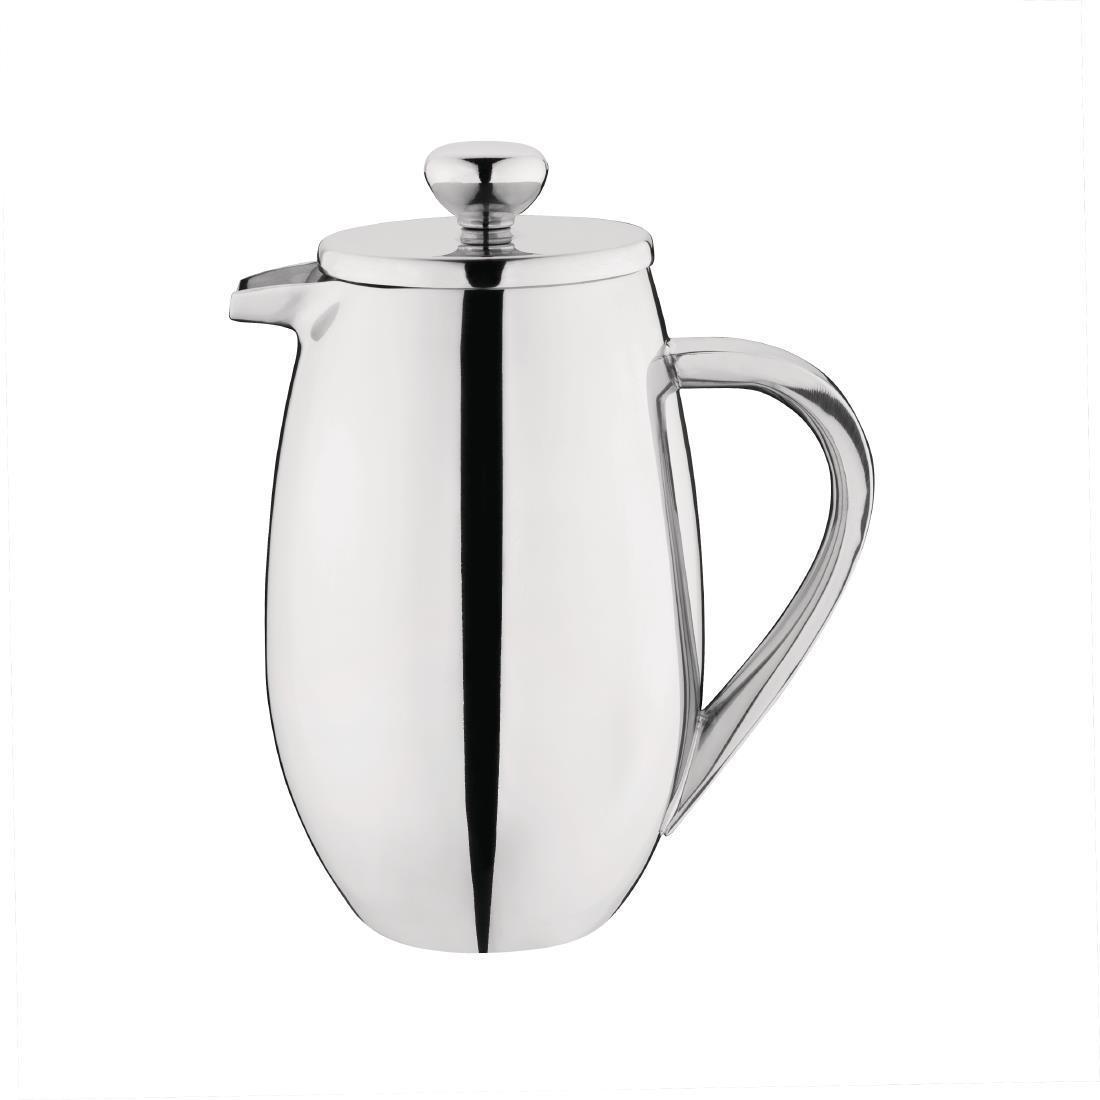 Olympia Insulated Stainless Steel Cafetiere 3 Cup